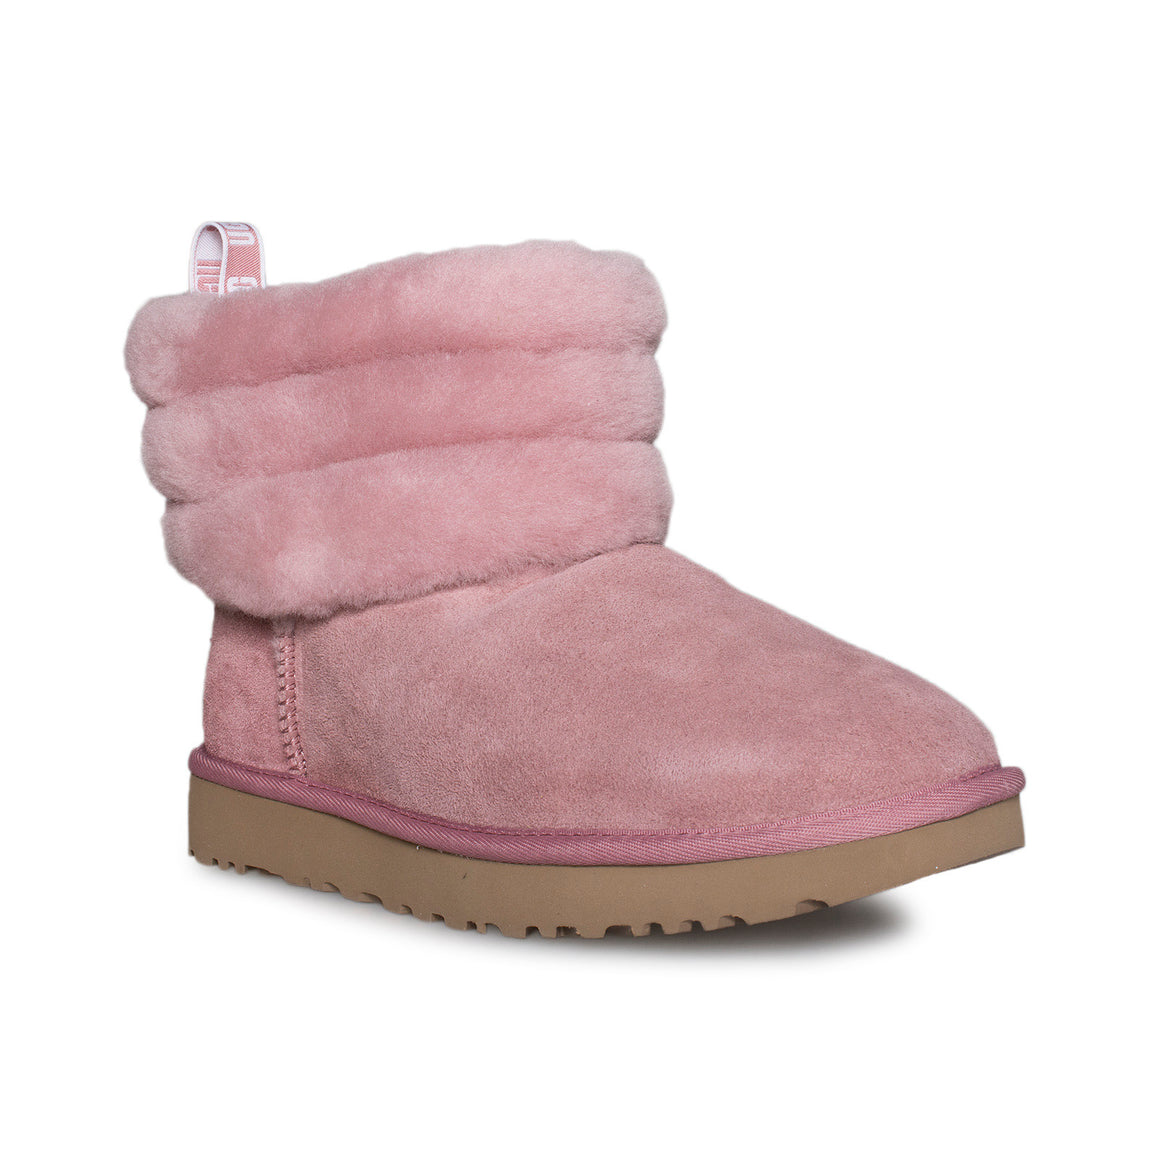 UGG Fluff Mini Quilted Pink Dawn Boots - Women's